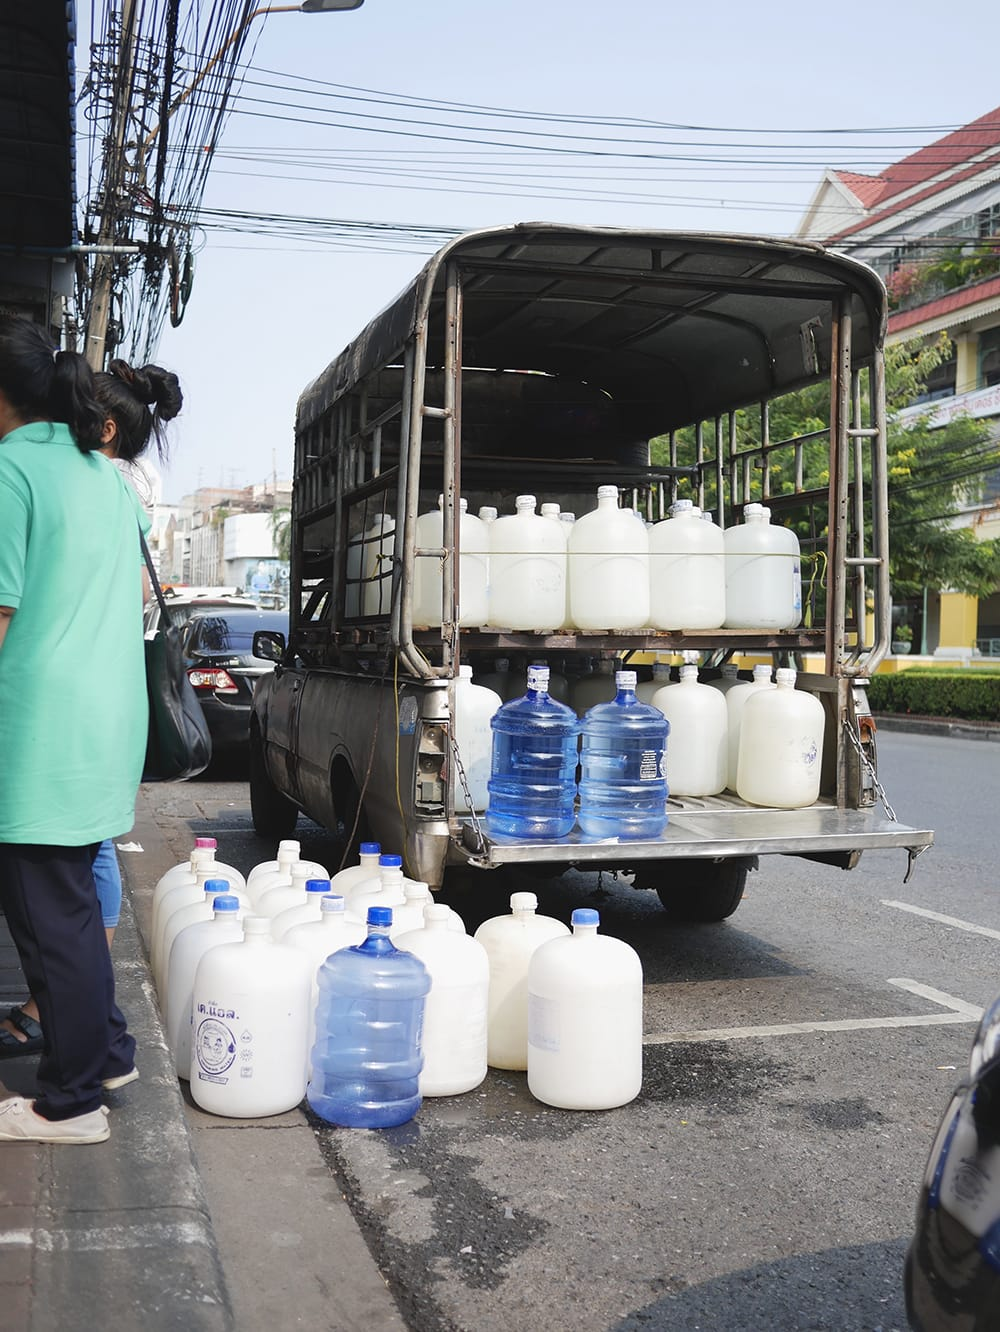 Worn-out truck with water pots. Bangkok